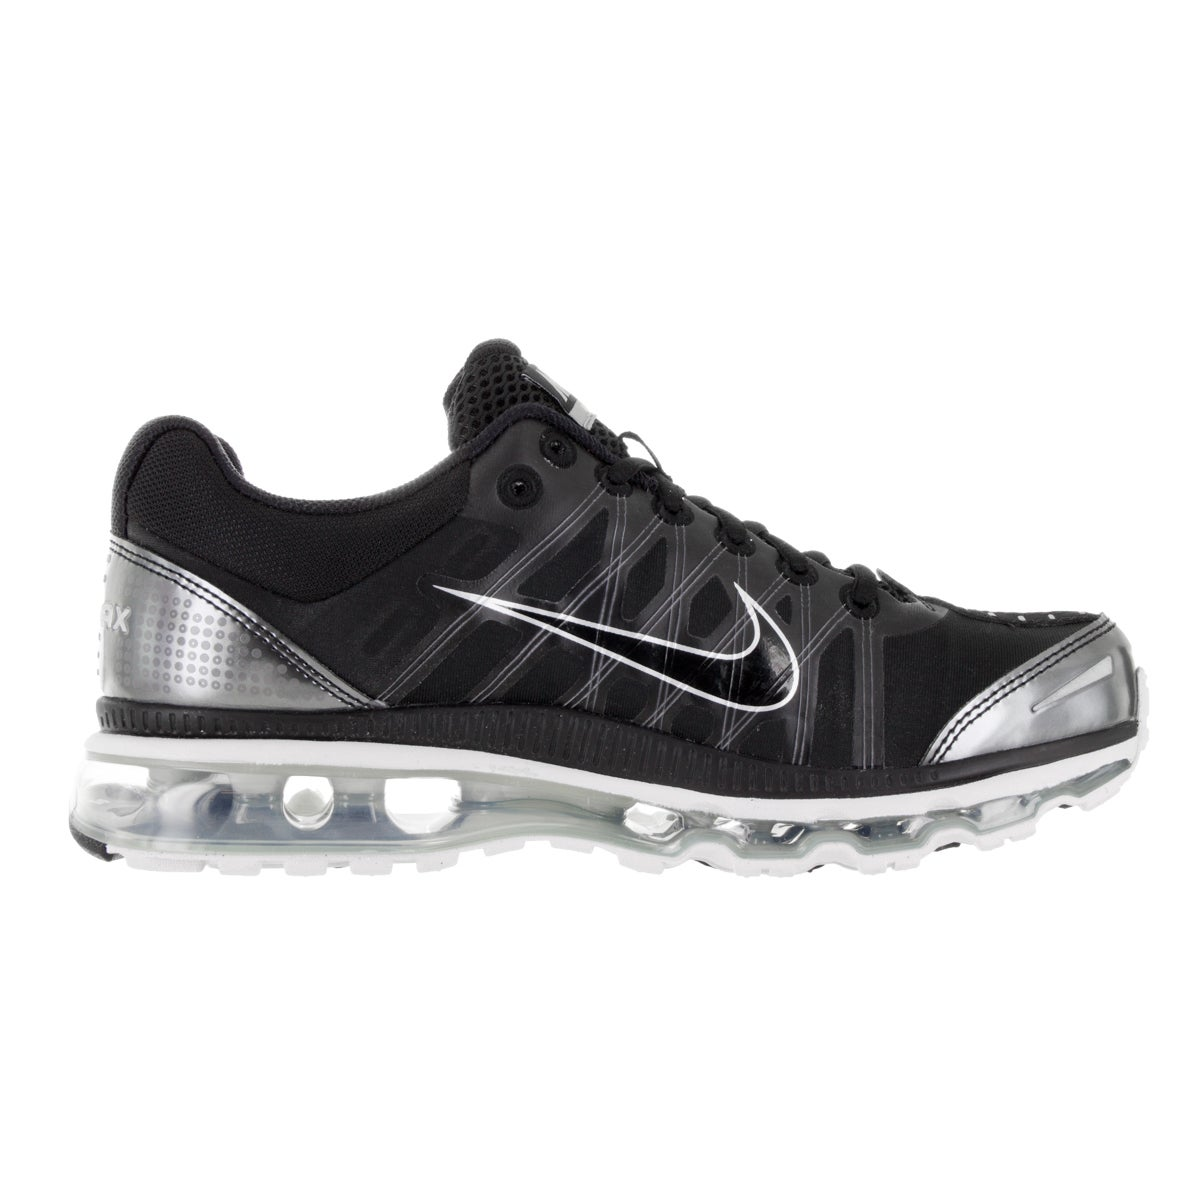 Madam Decorative Zoo at night  Shop Nike Men's Air Max 2009 Black Synthetic Leather Running Shoes -  Overstock - 13982325